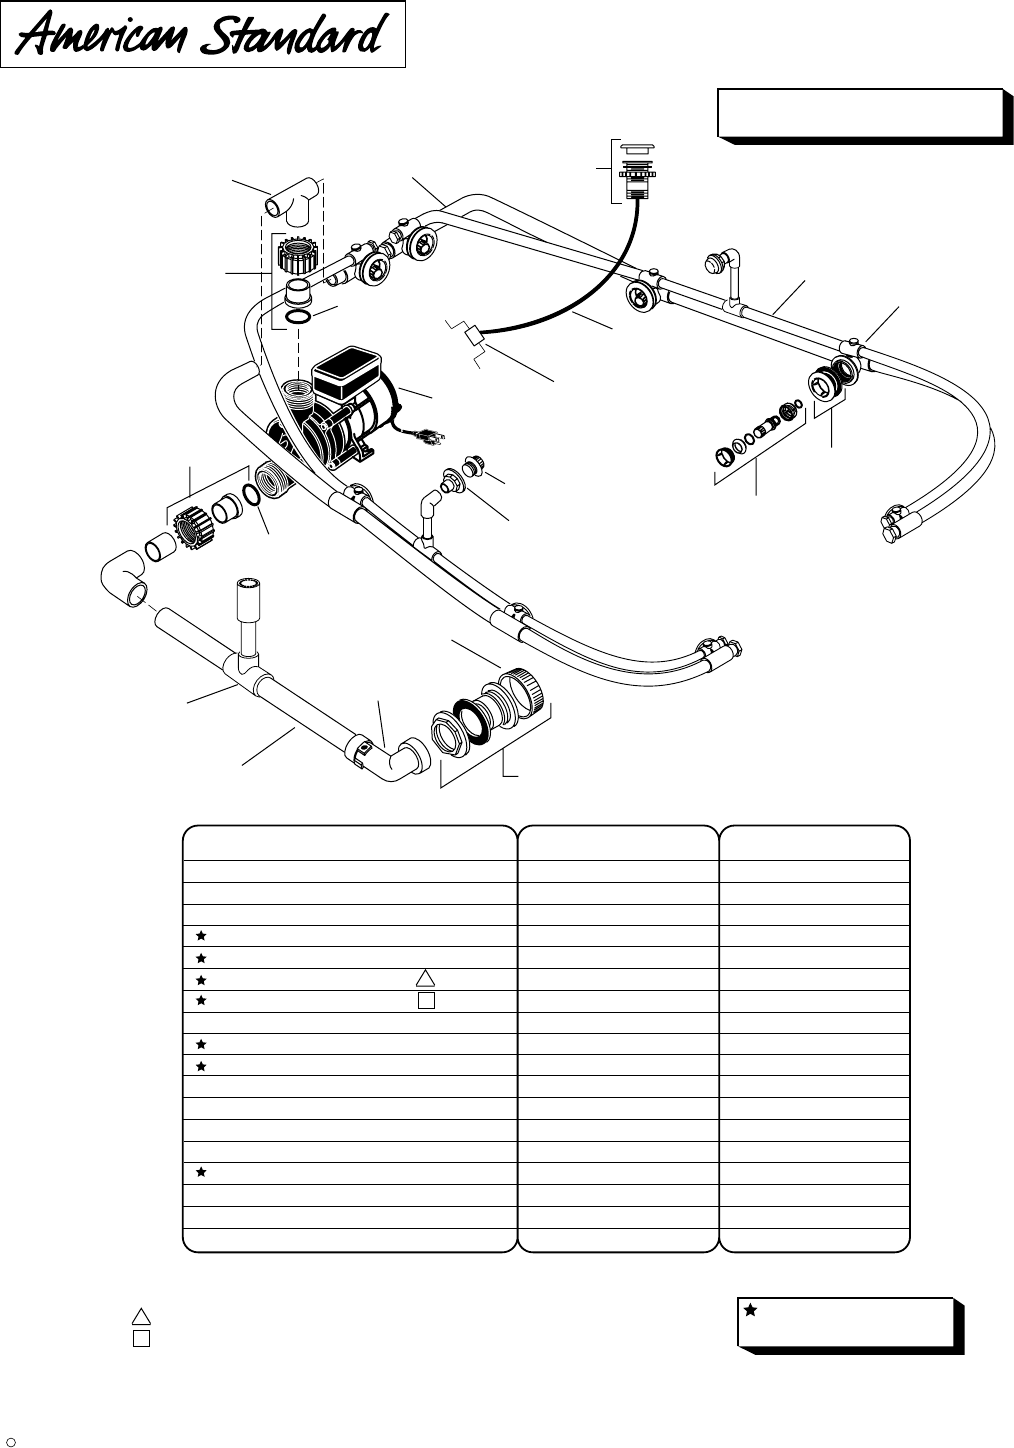 American Standard Hot Tub 751677 Xxx0a User Guide